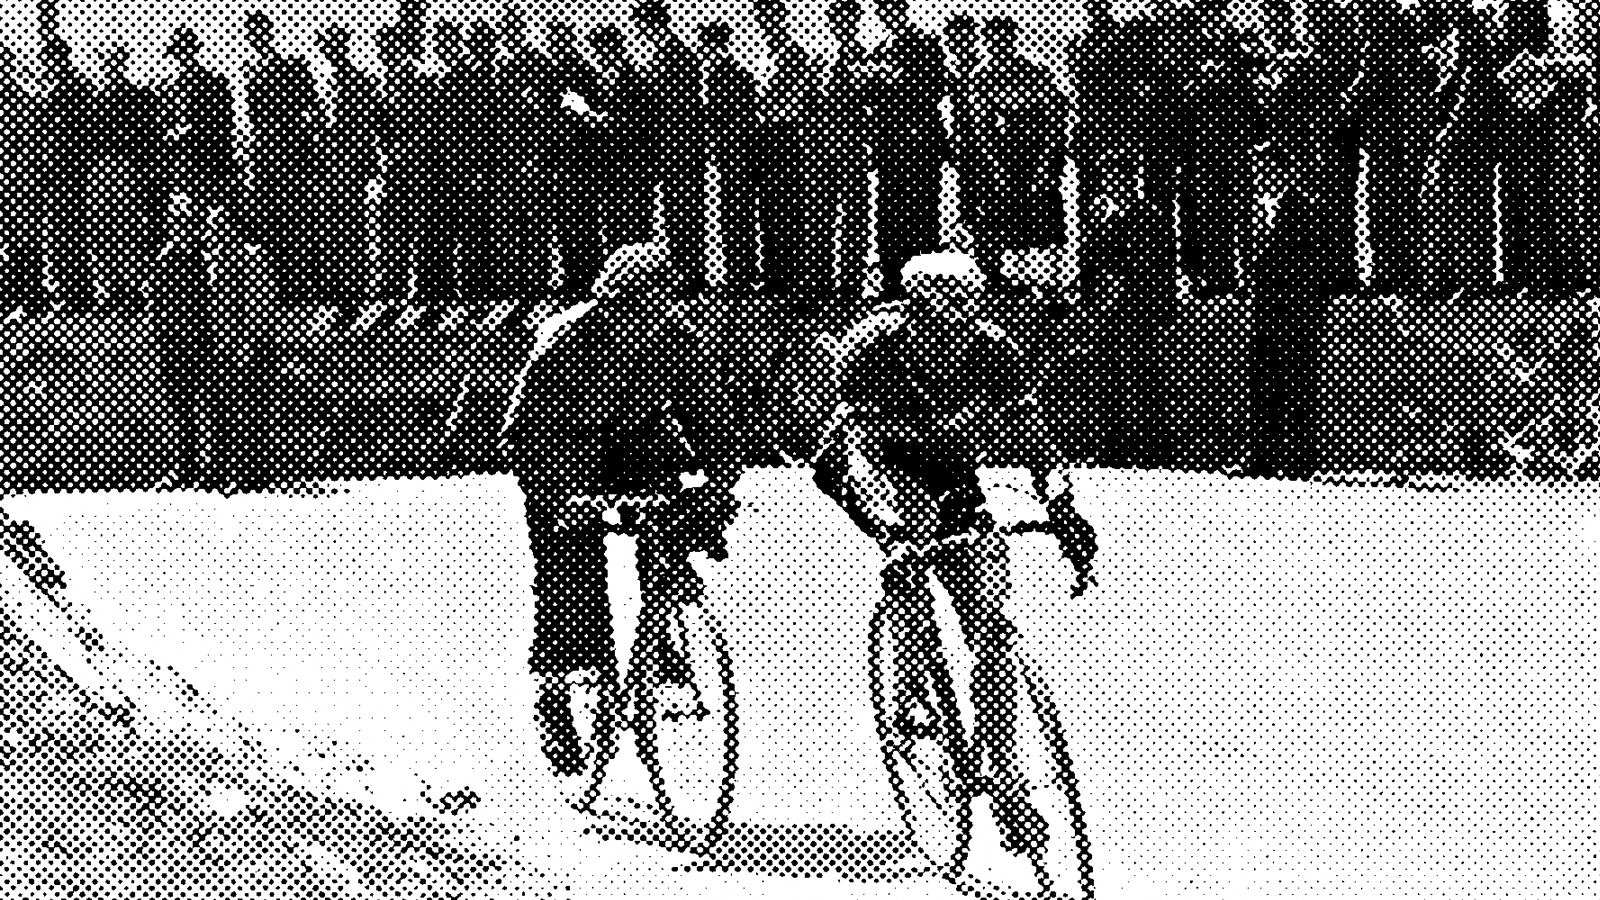 Malabrocca, the champion who finished last